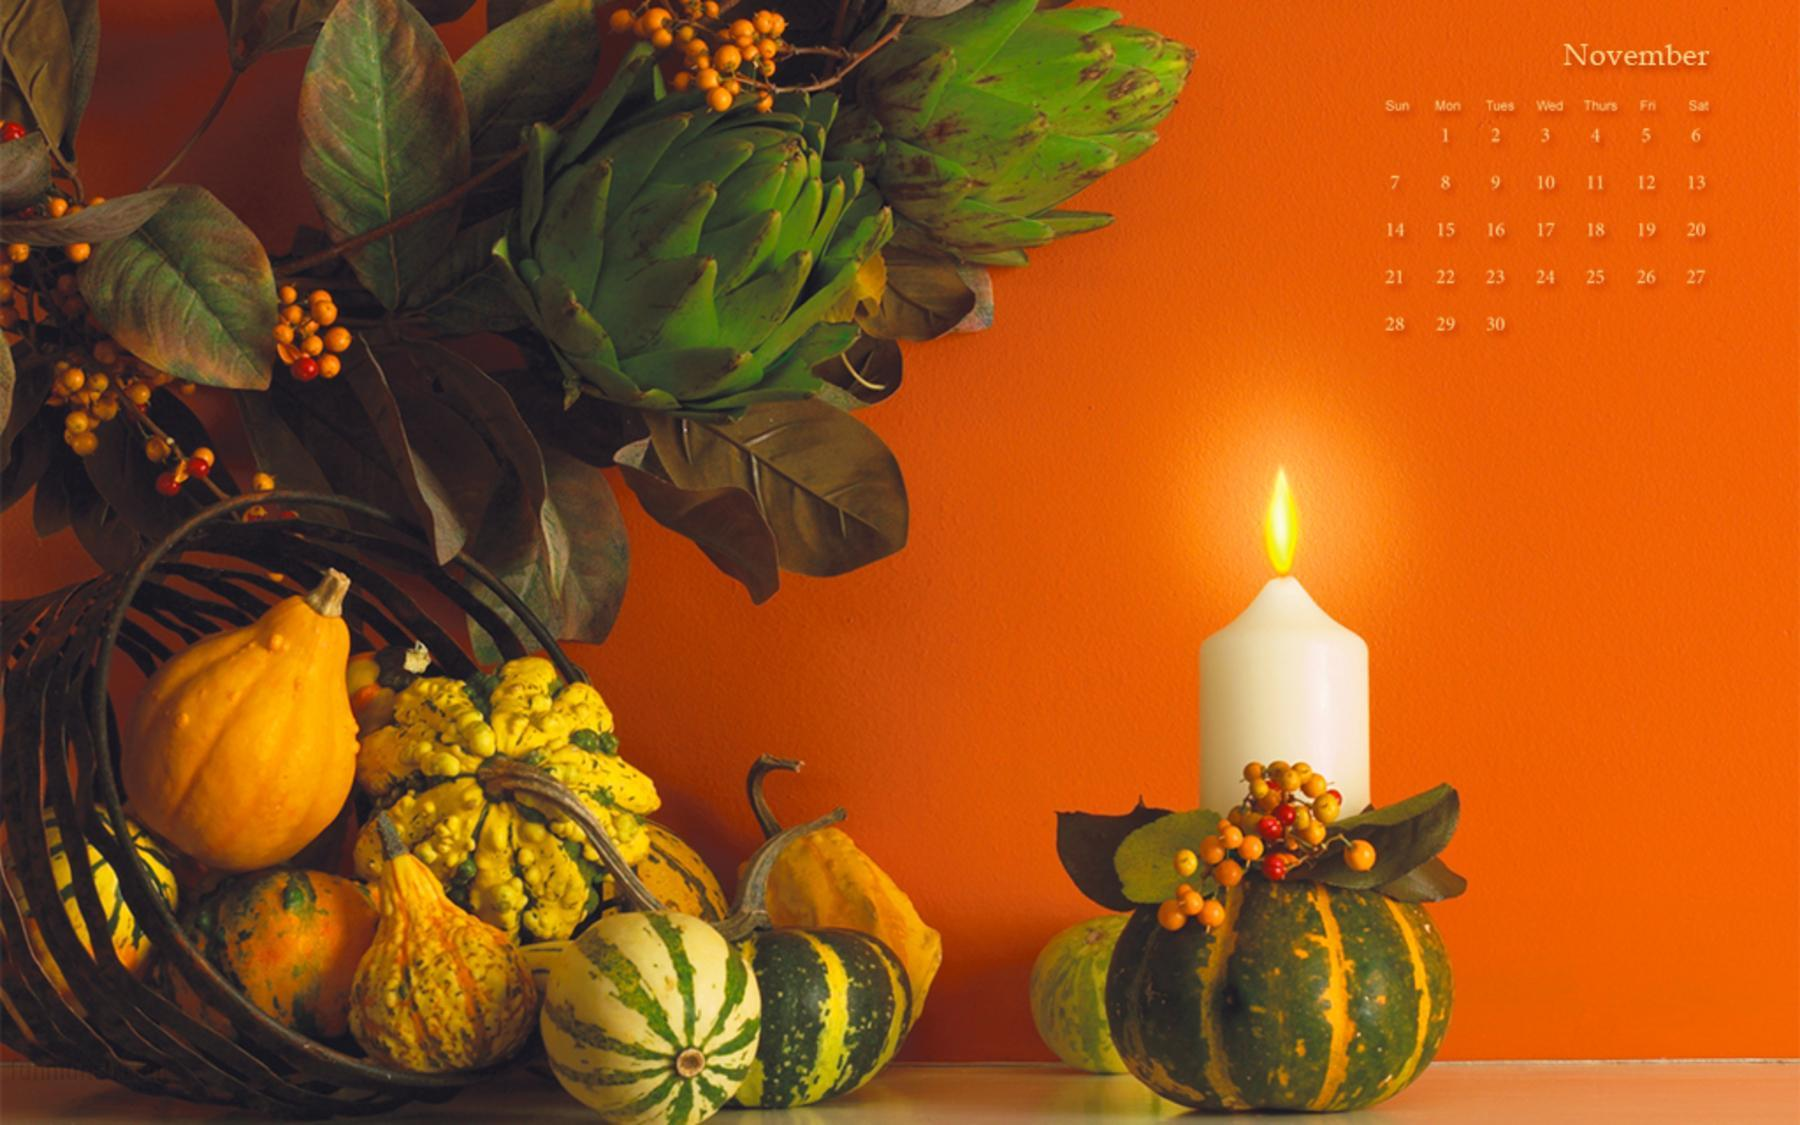 3D Thanksgiving Wallpapers   Top 3D Thanksgiving Backgrounds 1800x1125